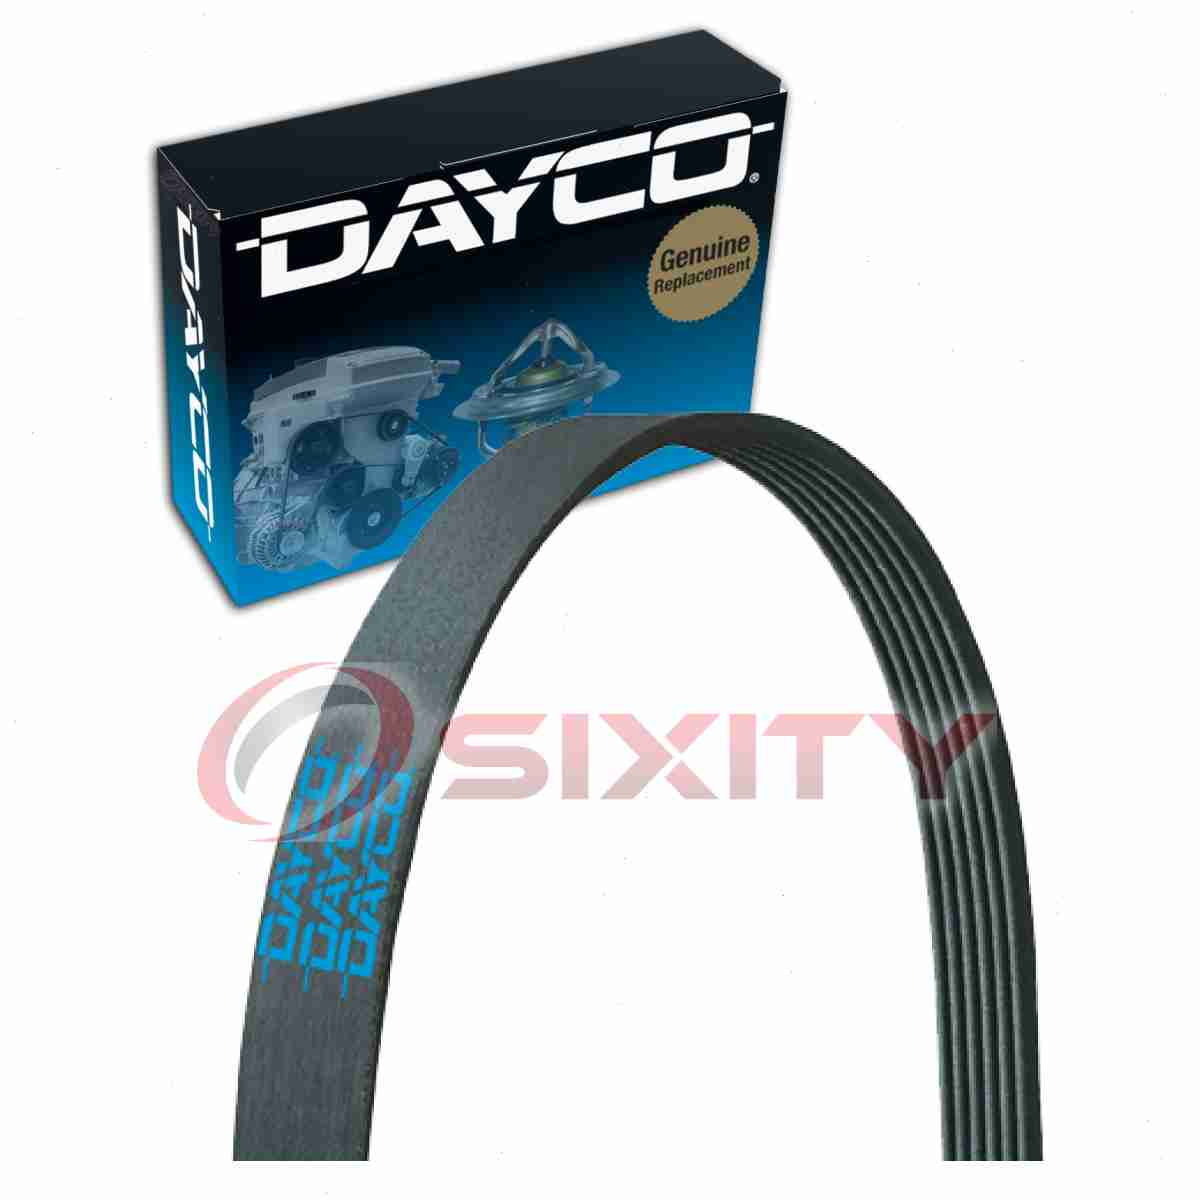 Dayco Serpentine Belt For 19892002 Chevrolet Camaro 38l V6 57l. Built For Passenger Cars And Lightduty Trucks The Extensive Line Of Dayco Poly Rib Serpentine Belts Are Engineered High Mileage Demanding Drives. Chevrolet. Serpentine Belt Diagram 2002 Chevy Camaro At Scoala.co